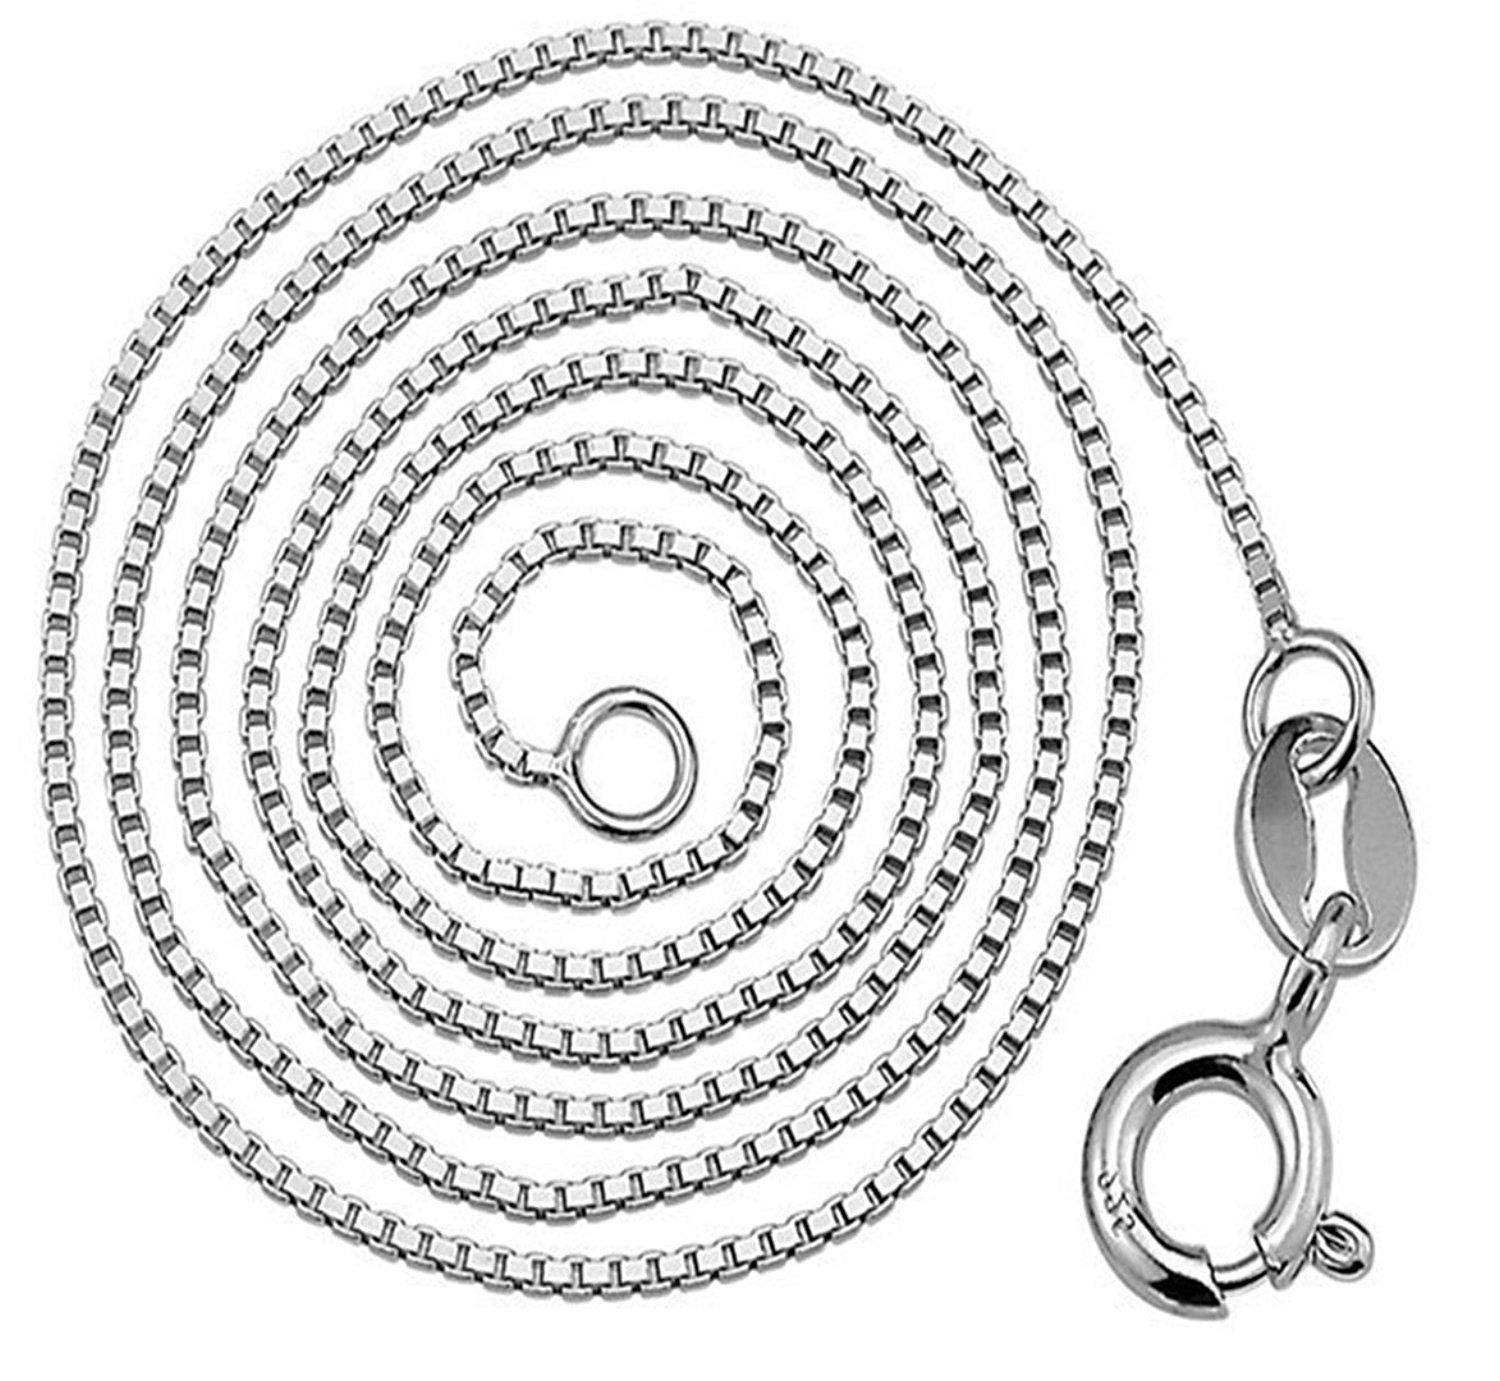 Penny Deals 1 Mm Box Chain Silver Made In Italy Tarnish Free And Hypoallergenic Availa Silver Necklace Sterling Silver Pendants Fashion Jewelry Necklaces